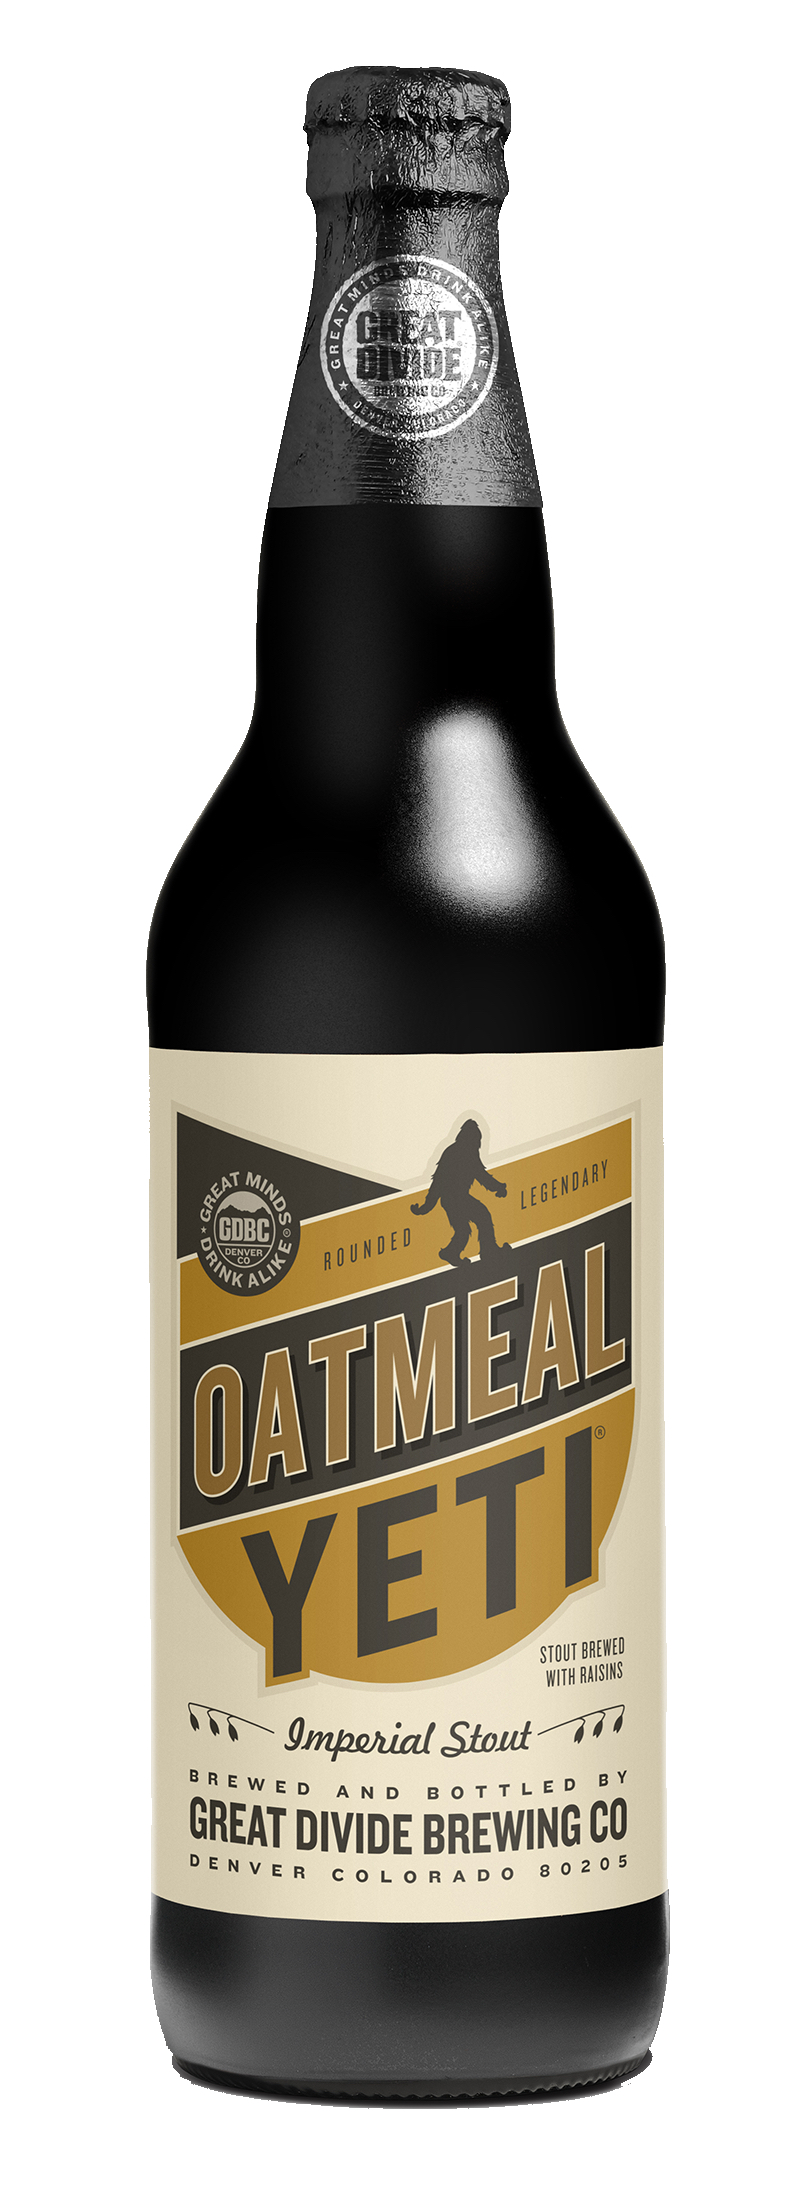 Great Divide Oatmeal Yeti